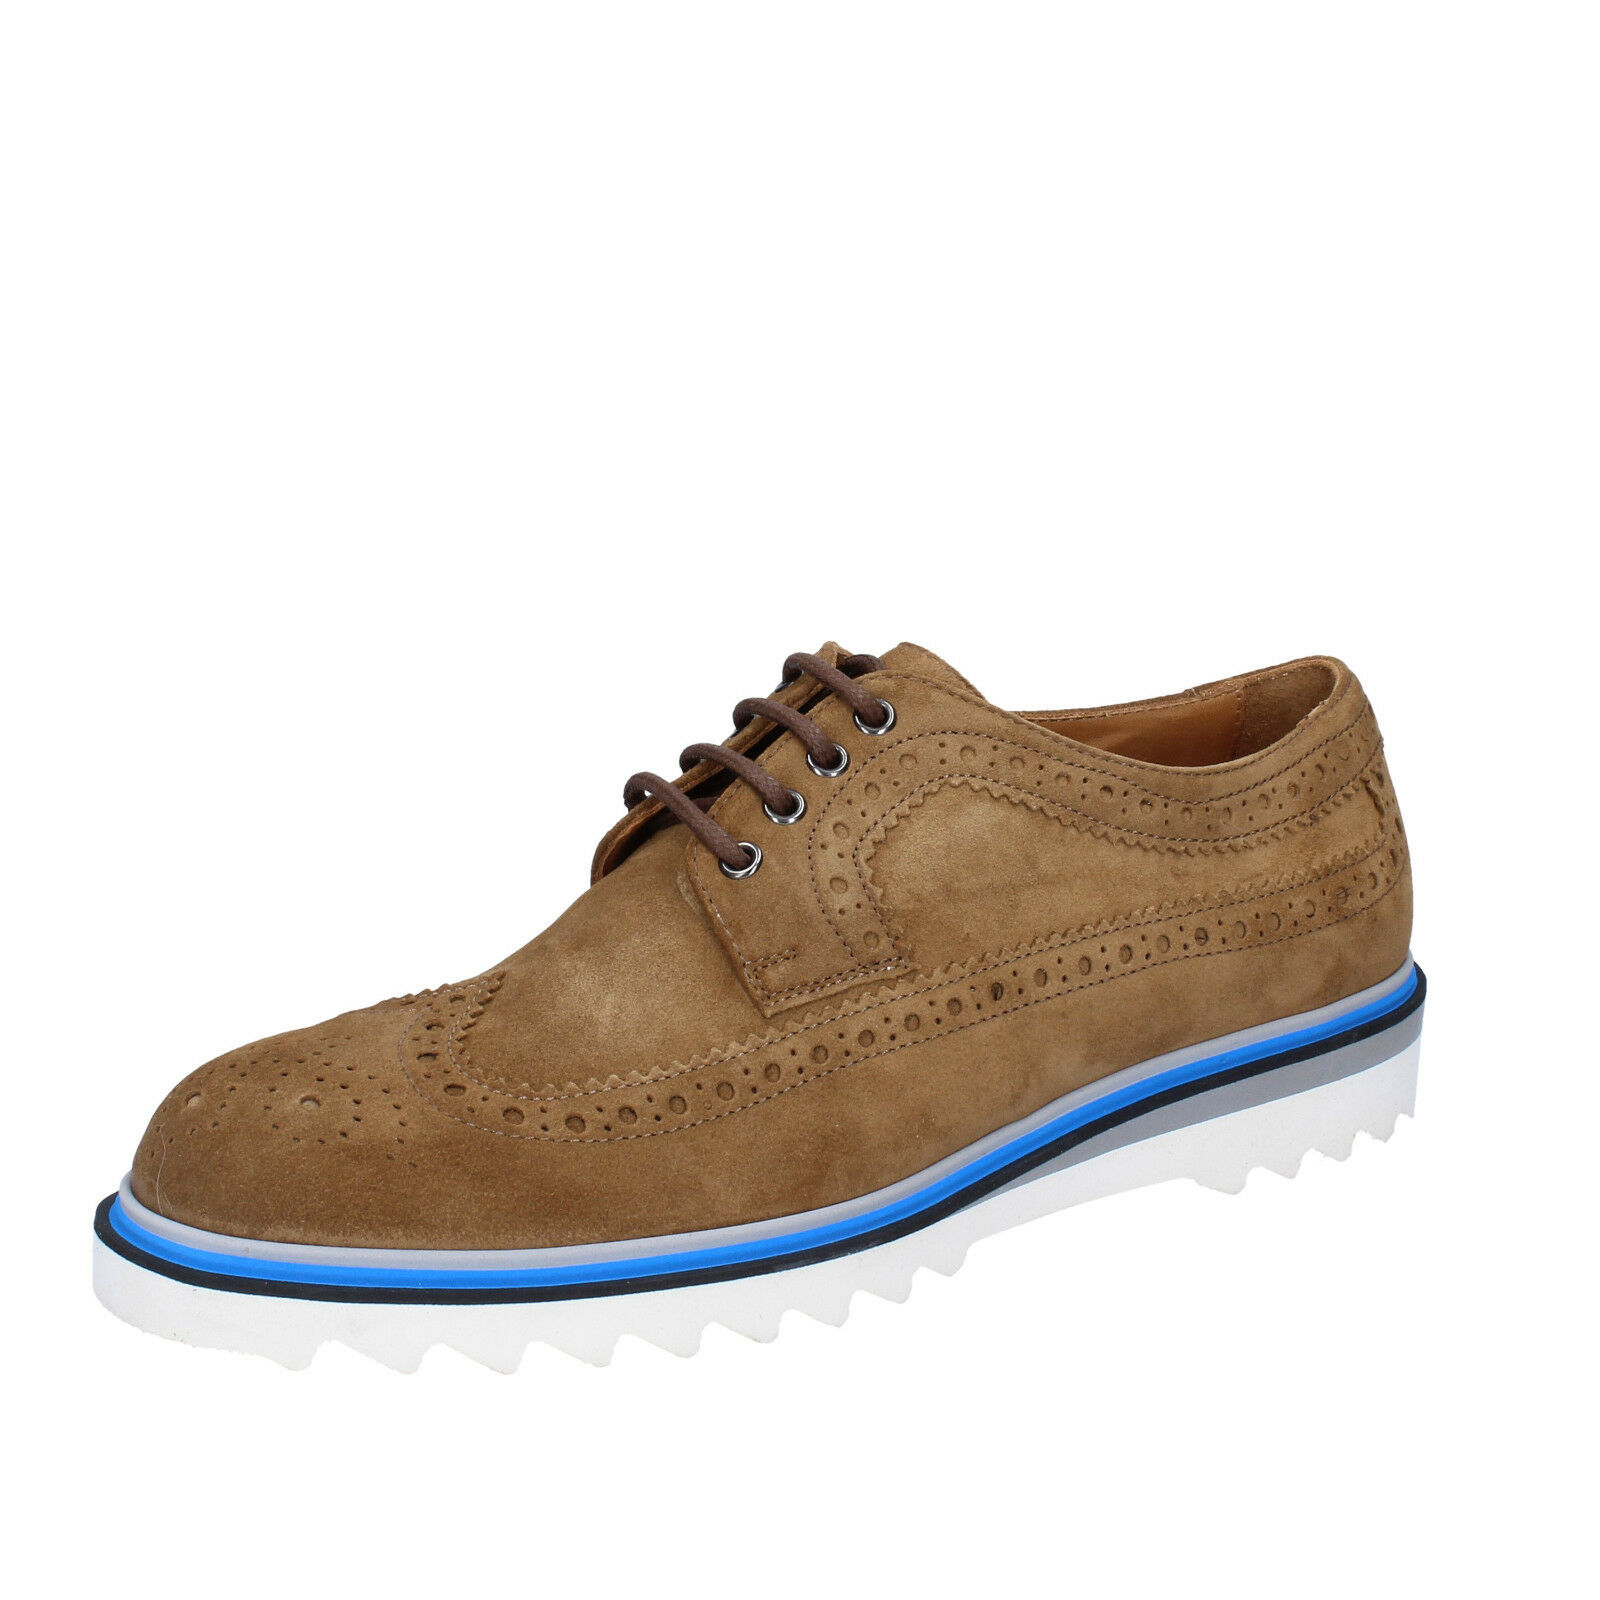 Men's zapatos K852 & SON 13 (EU 46) elegant marrón suede BT925-46